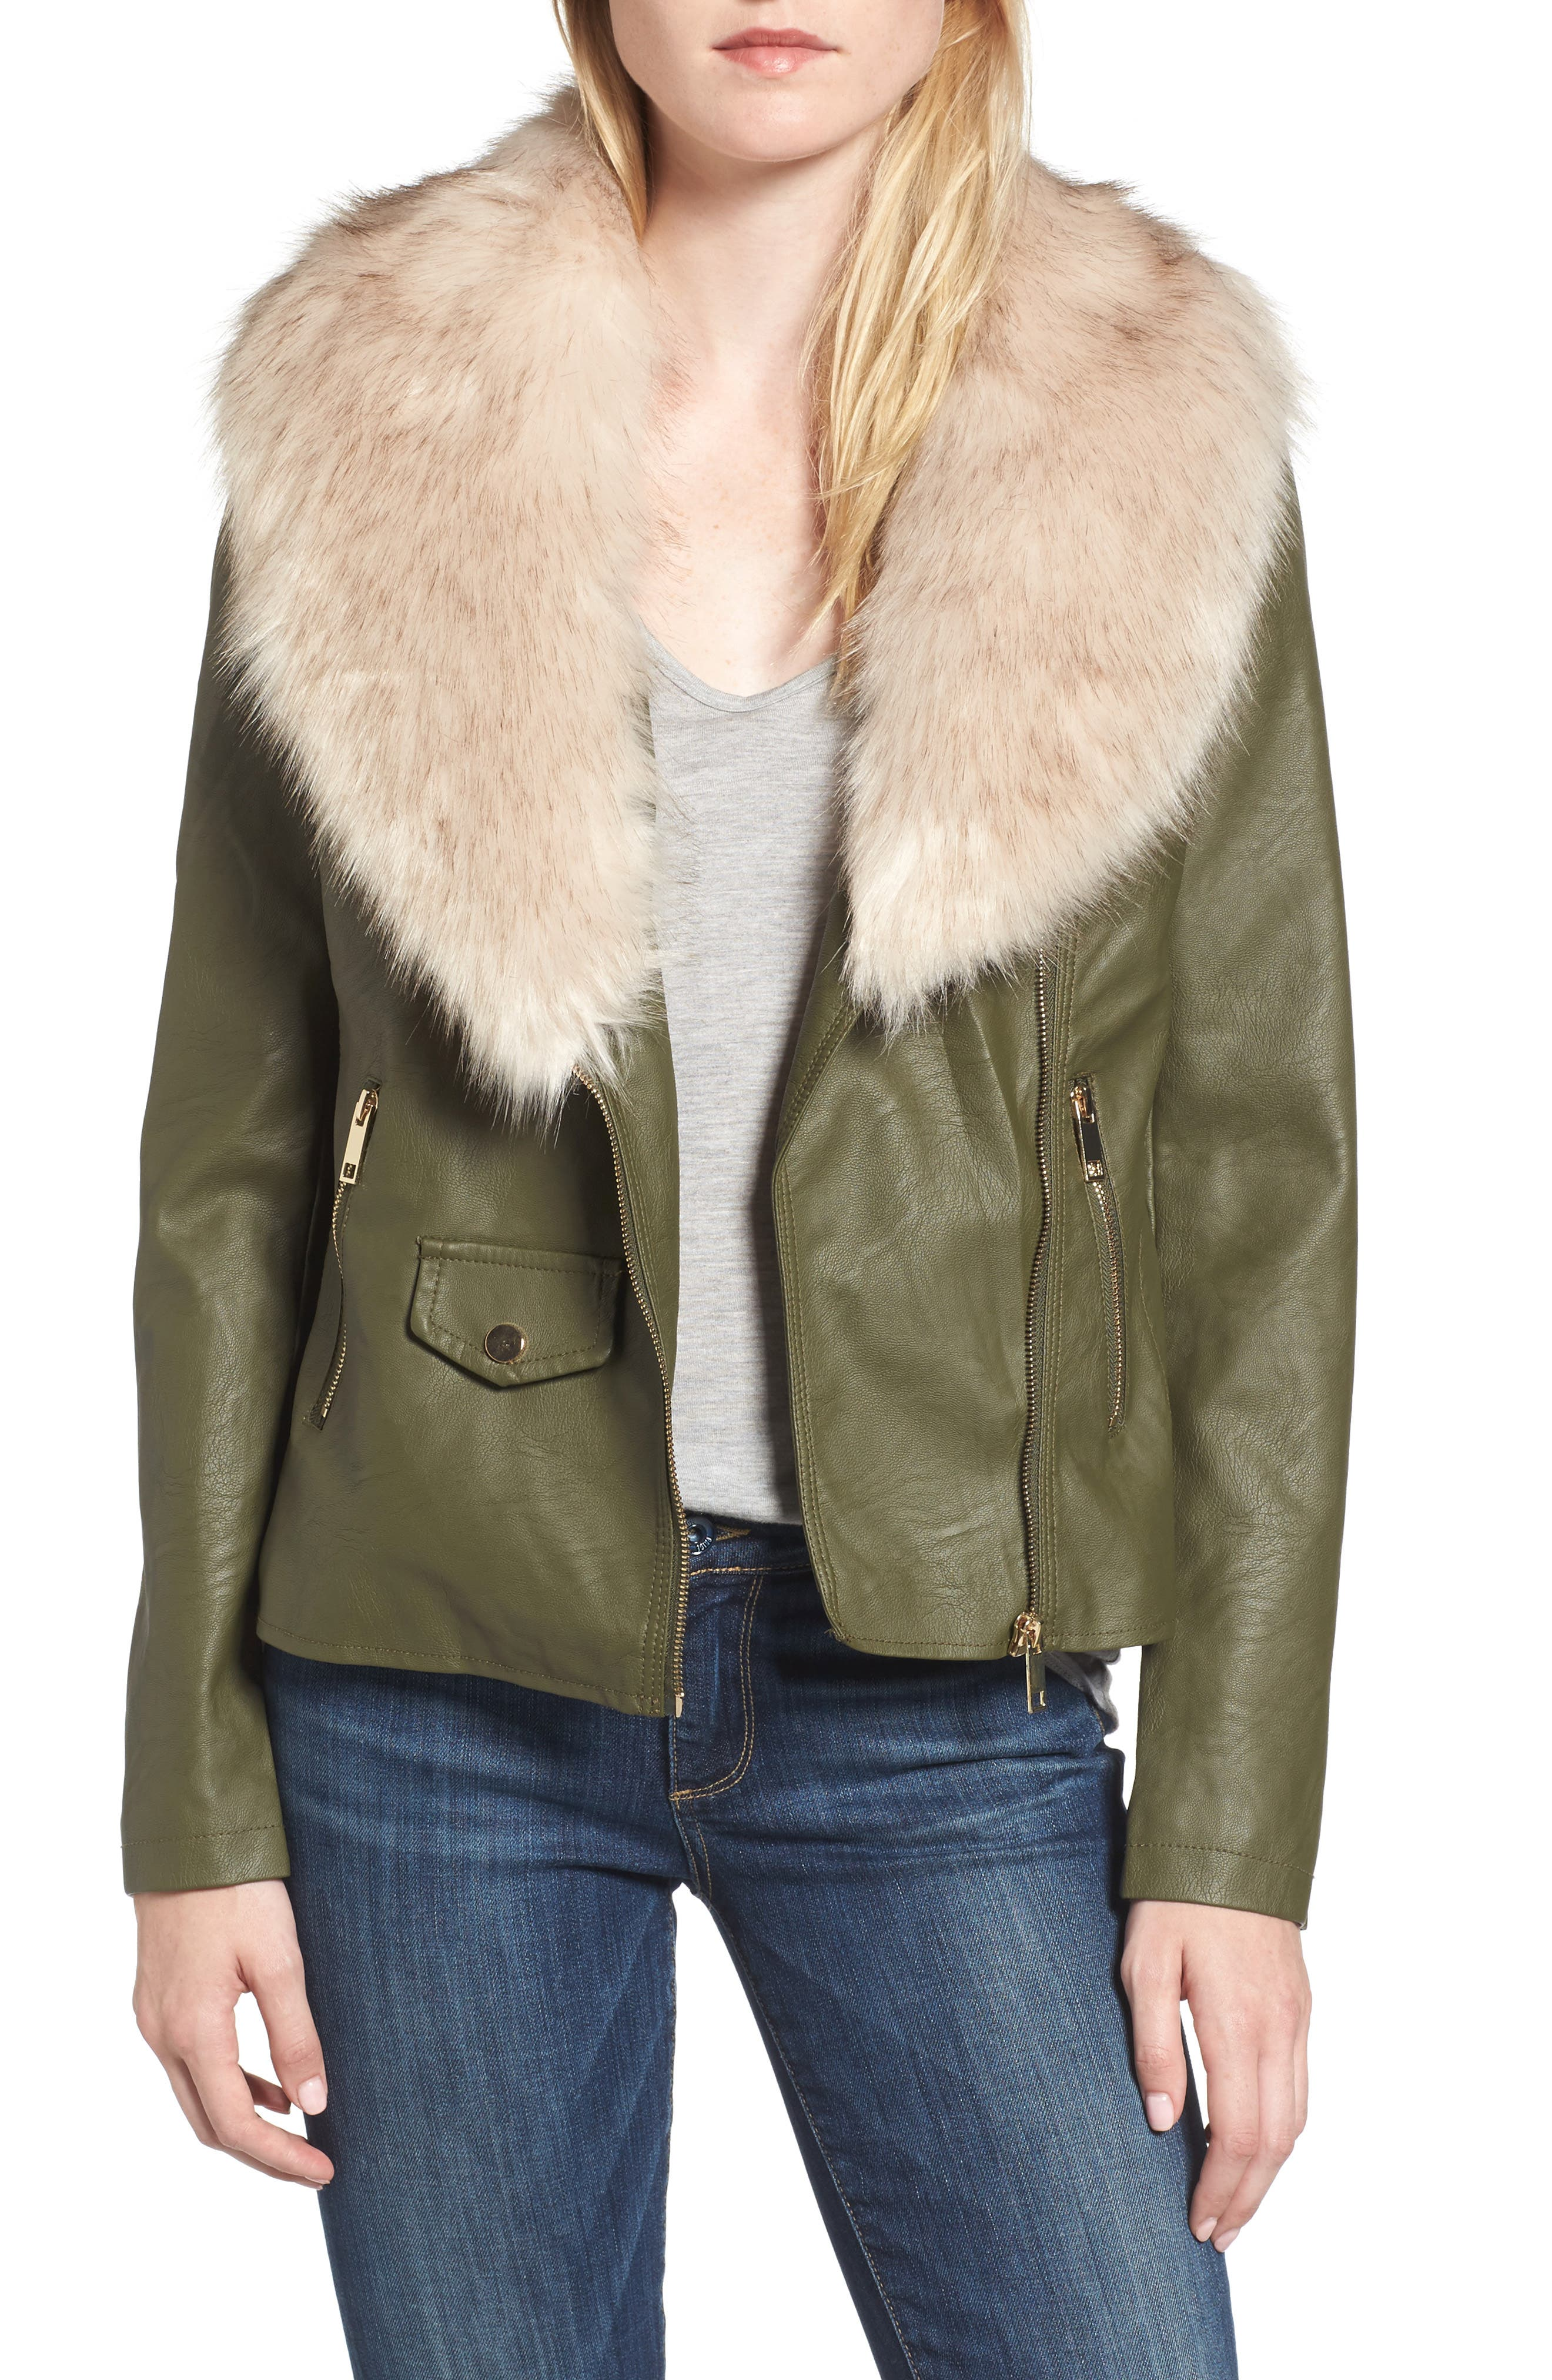 Alternate Image 1 Selected - Love Token Faux Leather Jacket with Removable Faux Fur Collar